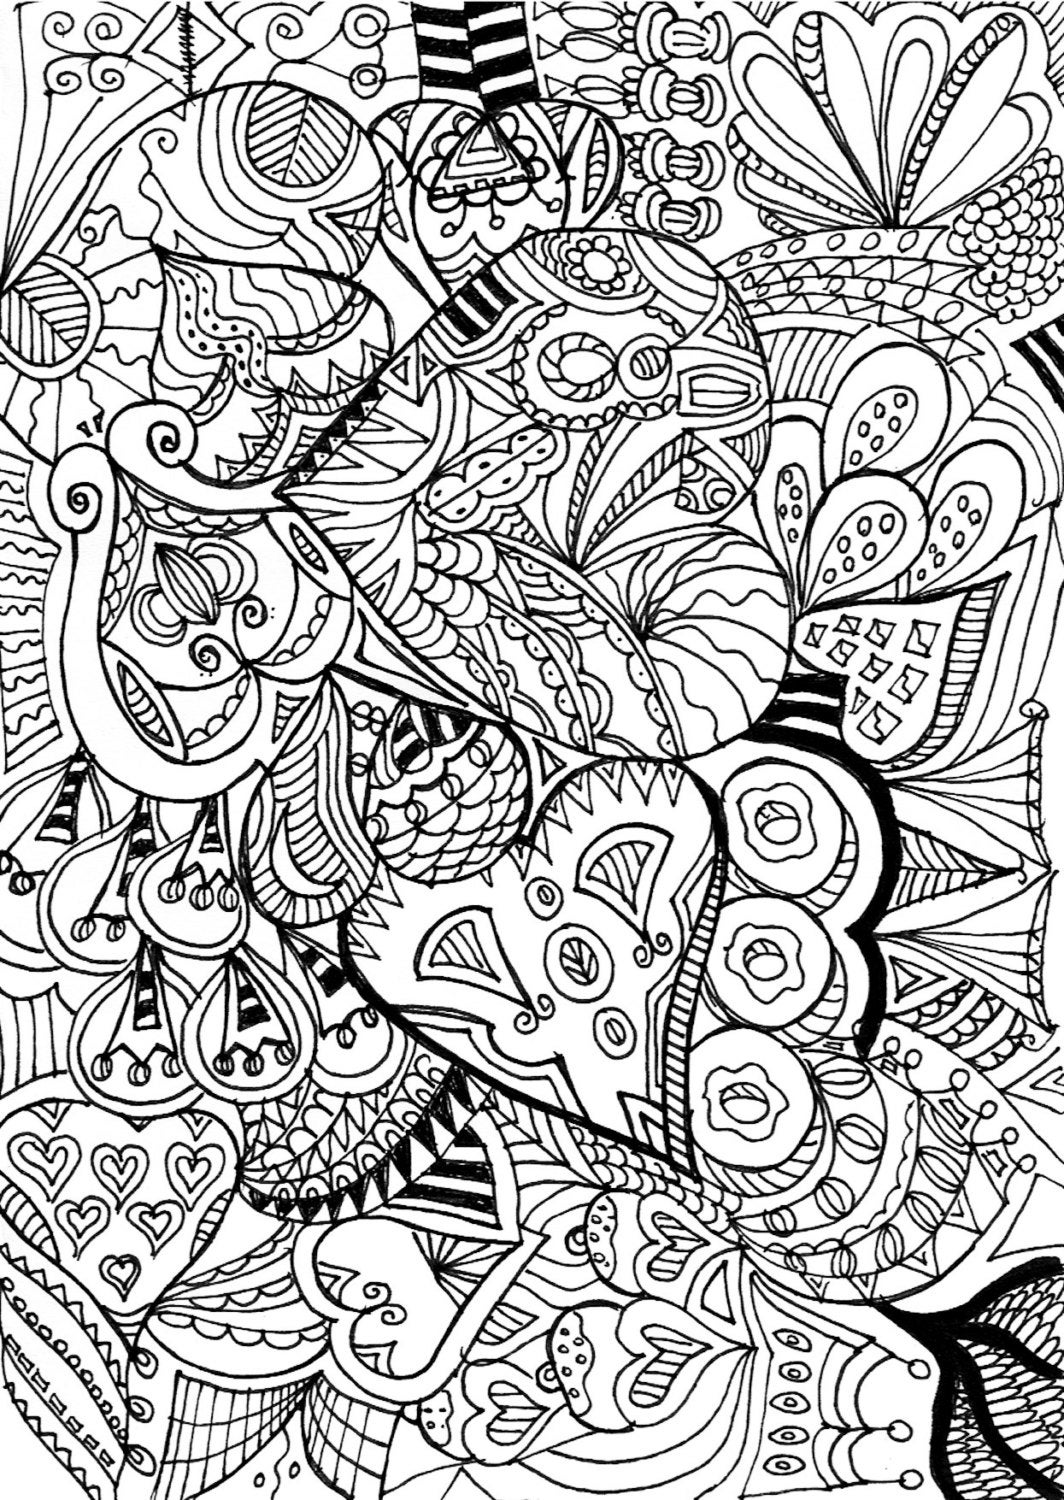 coloring pages zentangle zentangle coloring page coloring zentangle pages